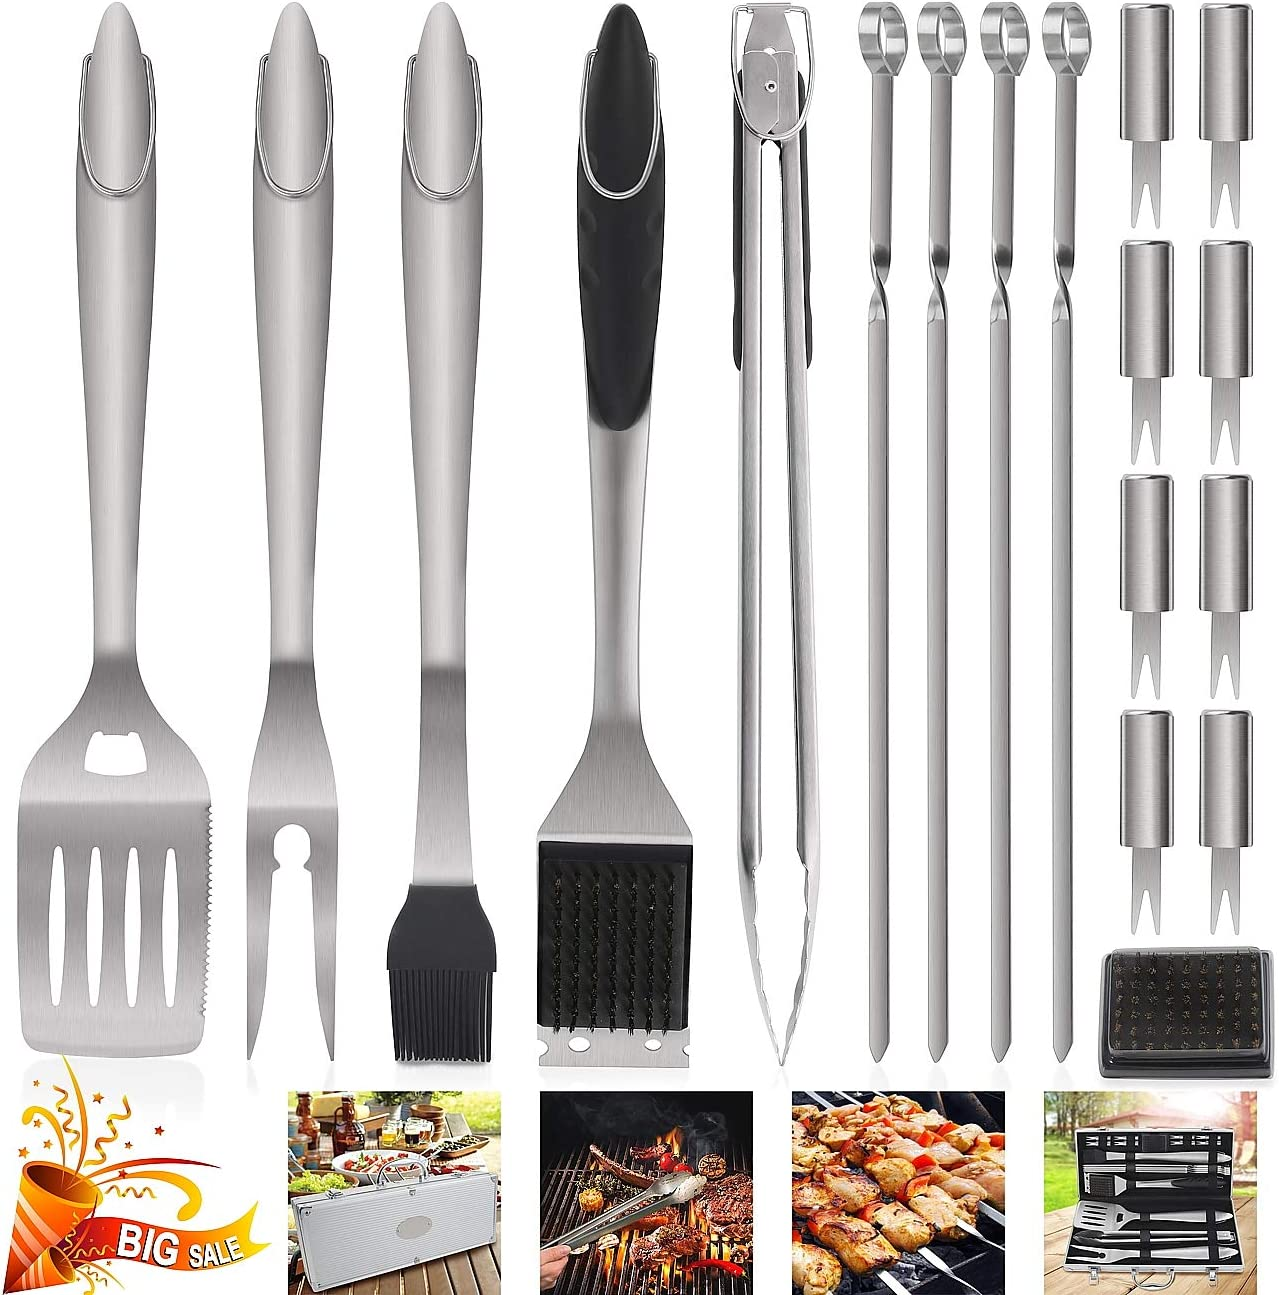 POLIGO 19PCS BBQ Grill Tools Set Extra Thick Stainless Steel Barbecue Grilling Accessories Set with Aluminum Case for Christmas Birthday Gifts – Outdoor Grill Utensil Kit Ideal Presents for Dad Men